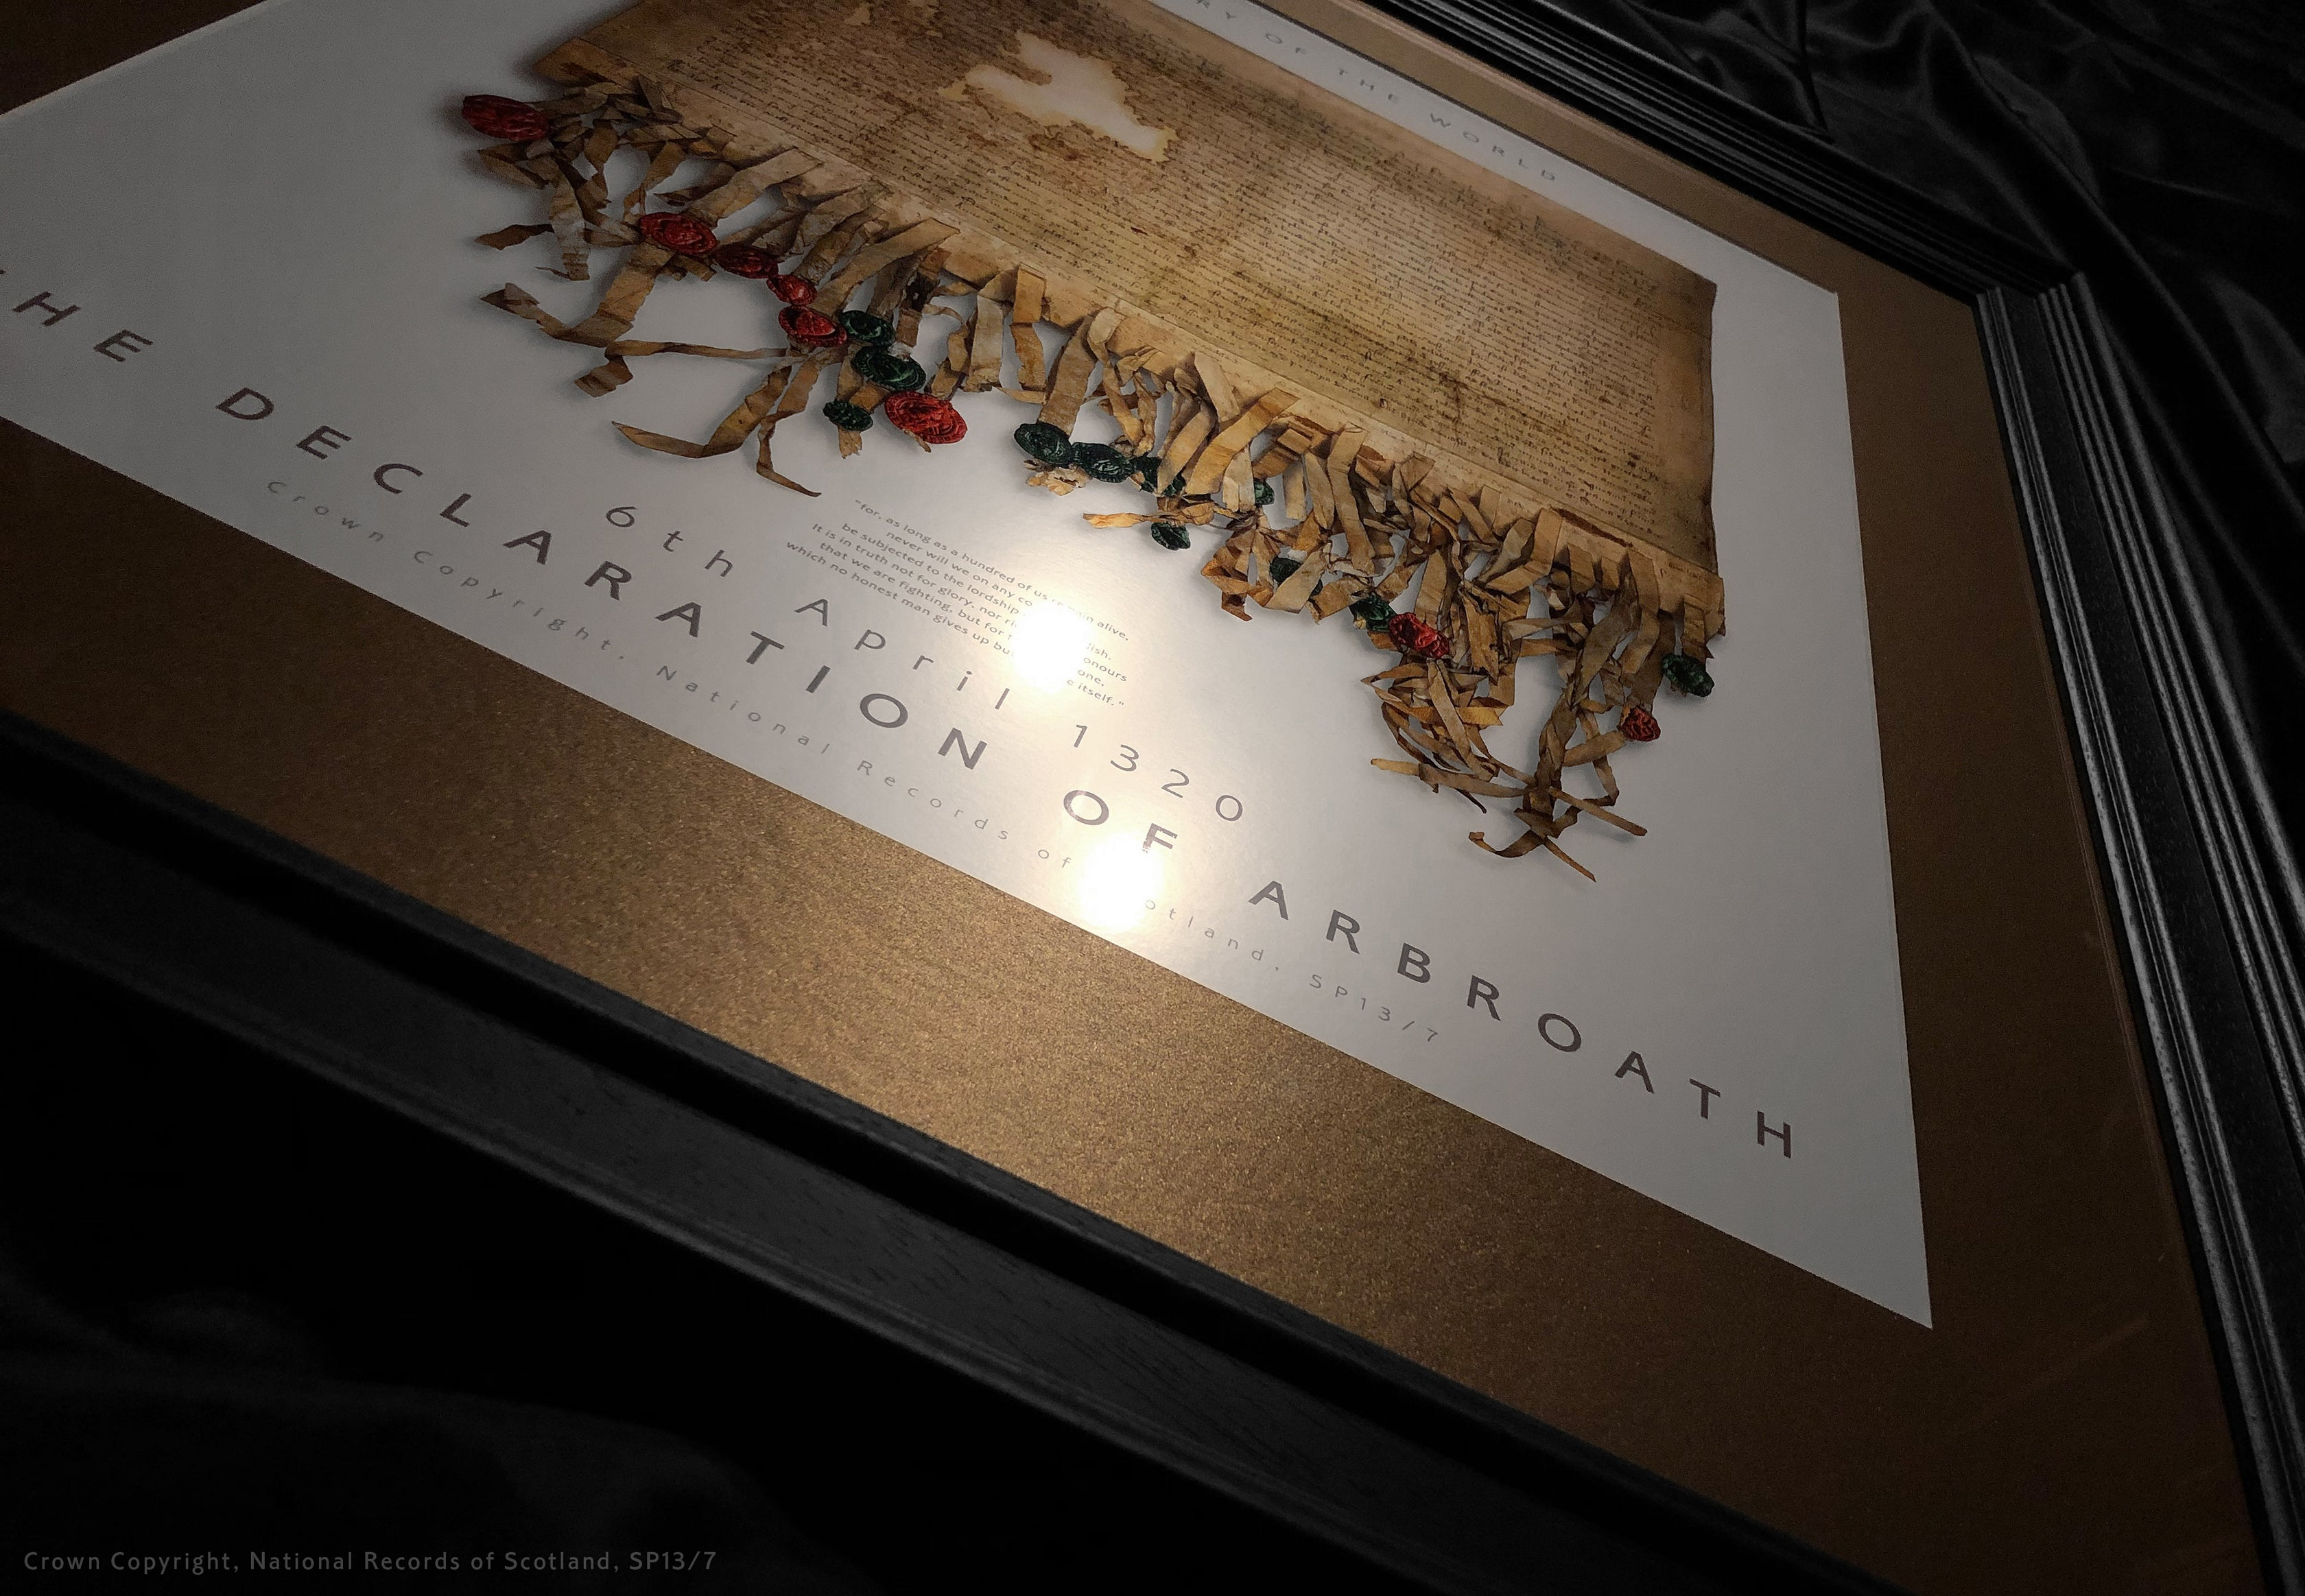 The Declaration of Arbroath Gold Metallic Print Editions - Pearl - with spotlight - bronze mount